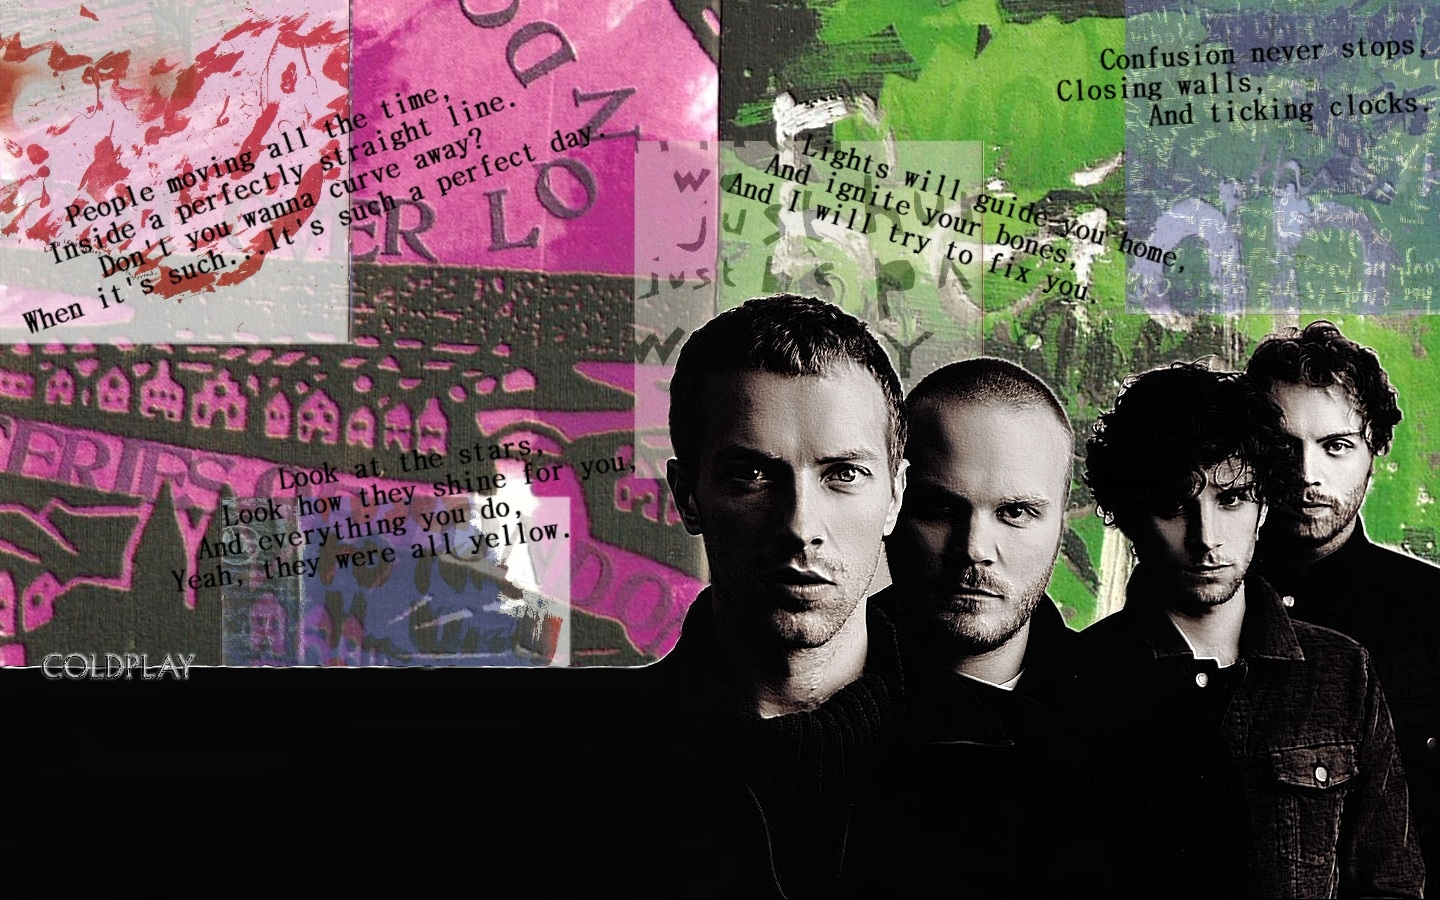 Coldplay Band Image Wallpaper Free